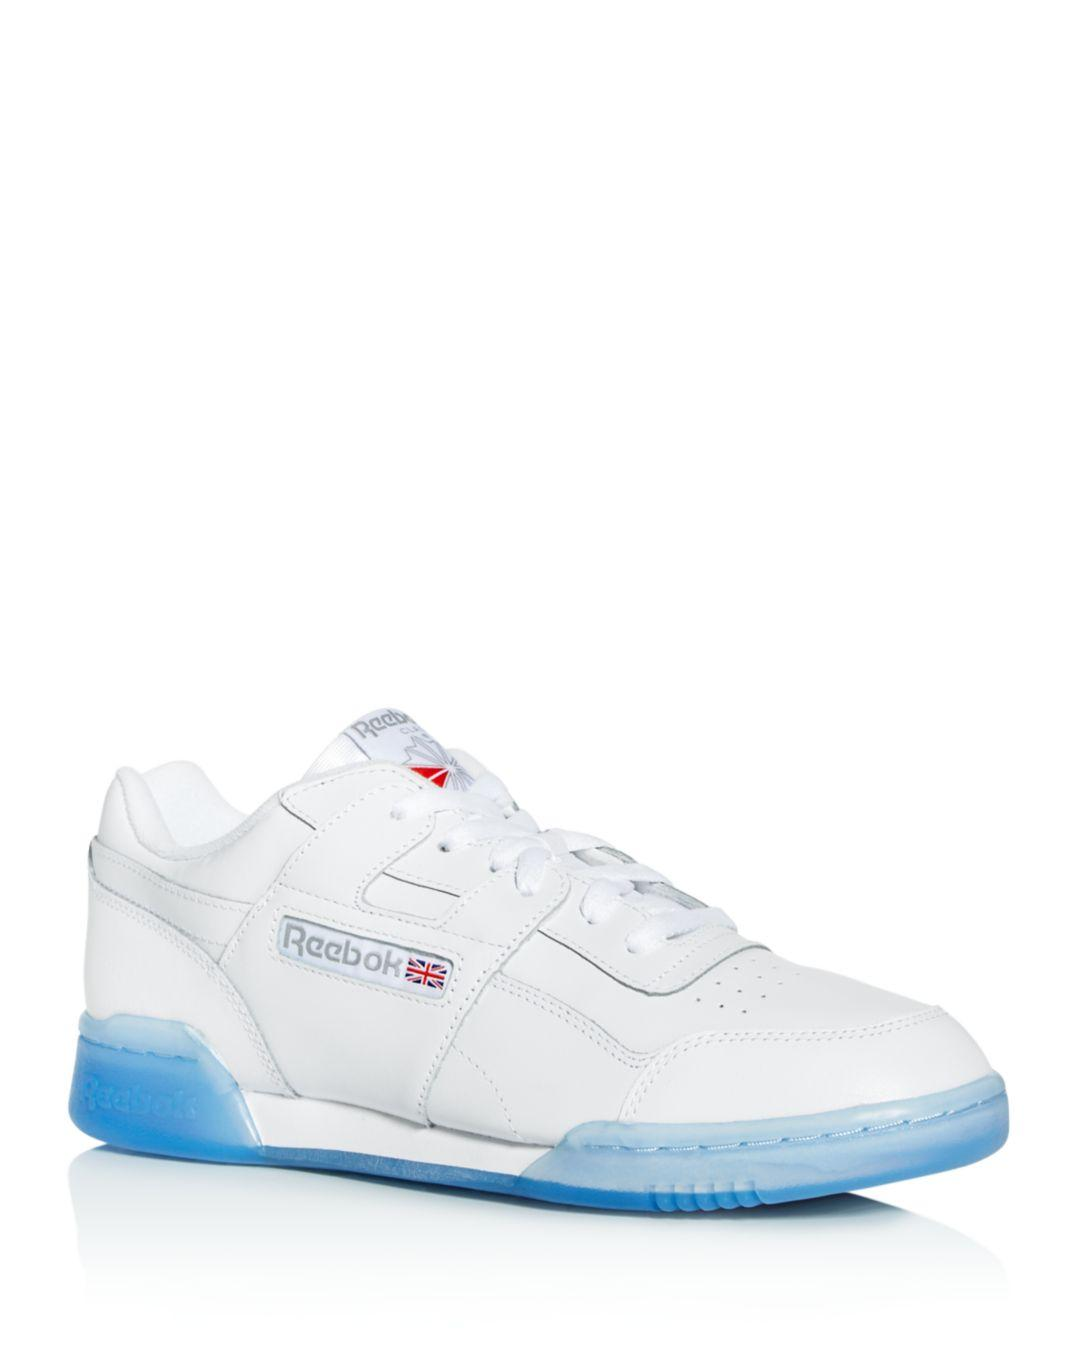 410c6486f9745 Reebok - White Men s Workout Plus Leather Low-top Sneakers for Men - Lyst.  View fullscreen